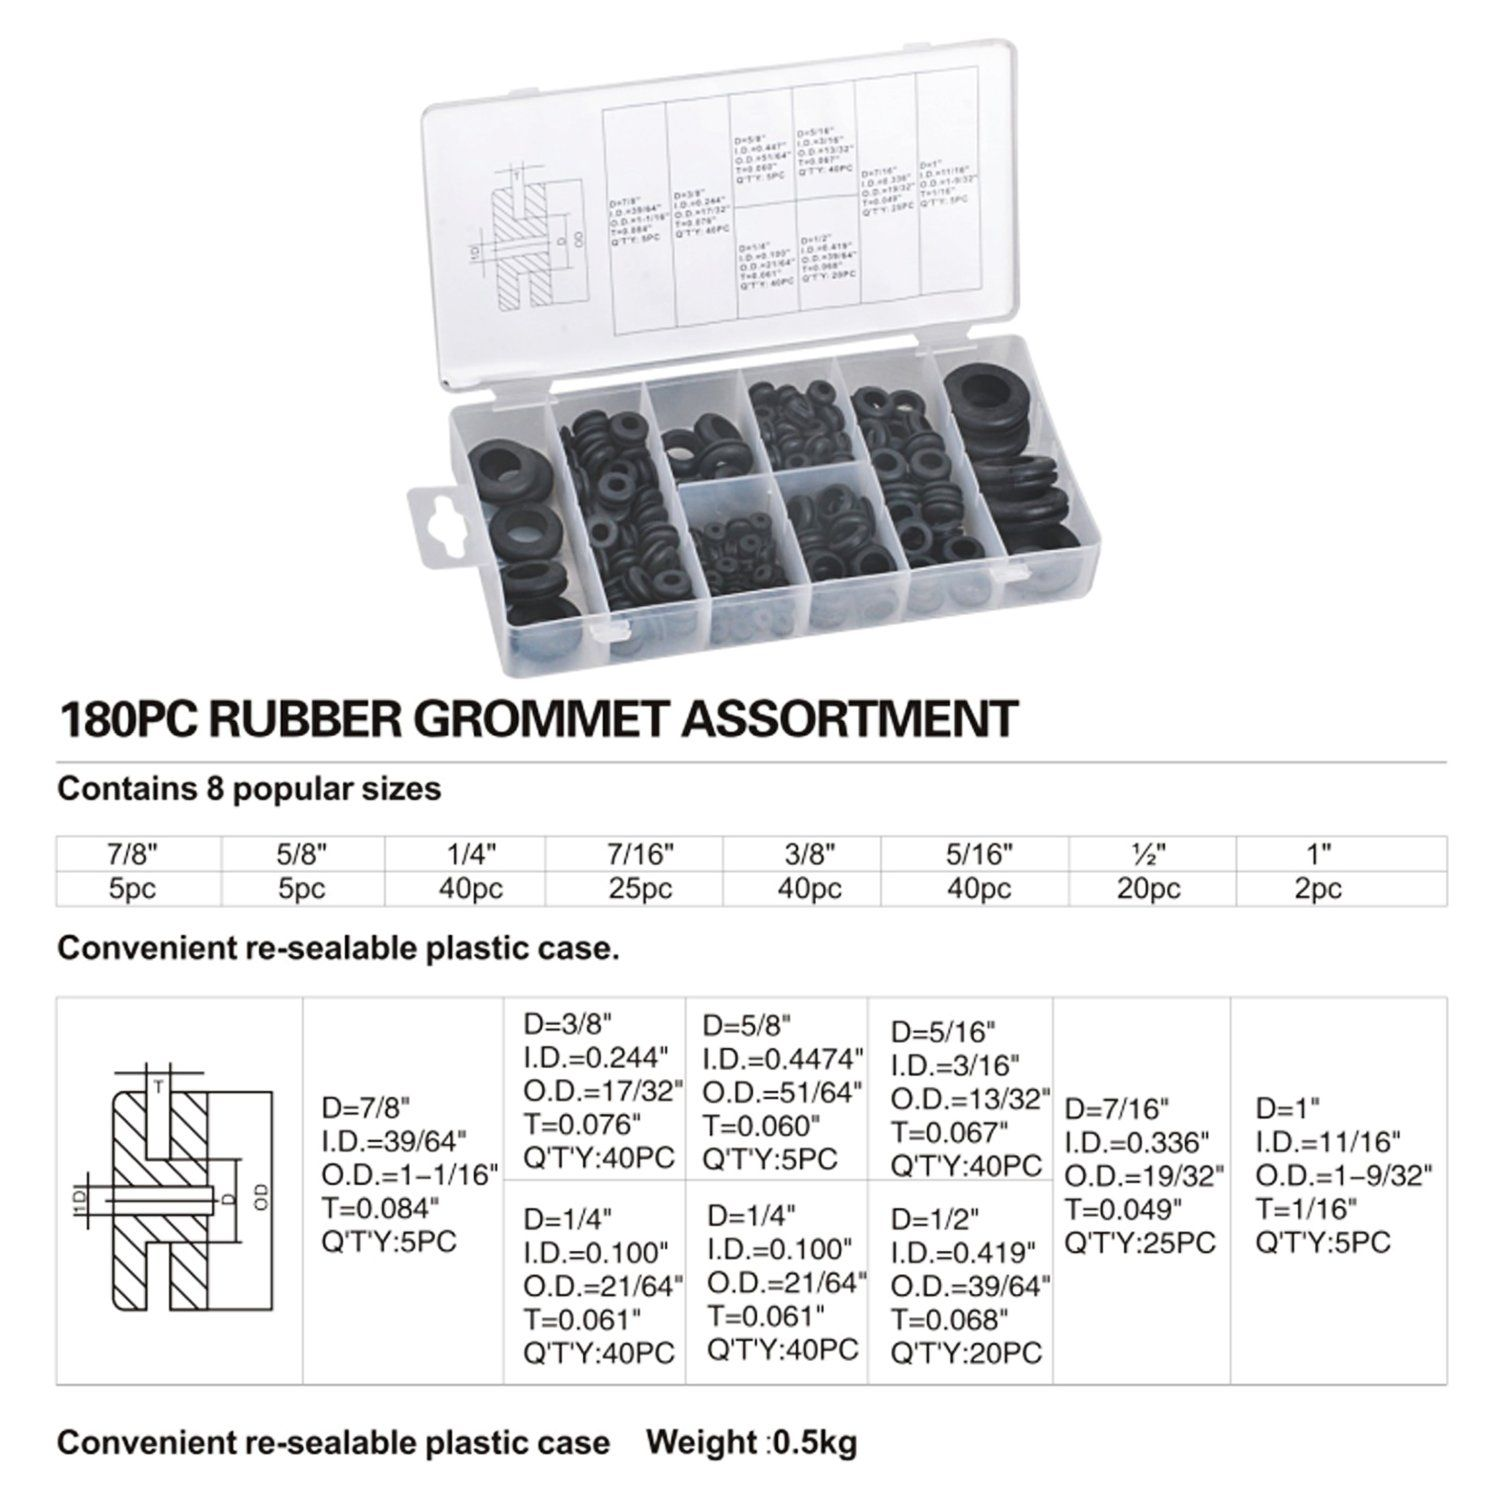 Eboot Rubber Grommet Assortment Kit Electrical Conductor Gasket Ring Set For Wire Plug And Cable 180 Pieces A Electrical Conductor Rubber Grommets Grommets